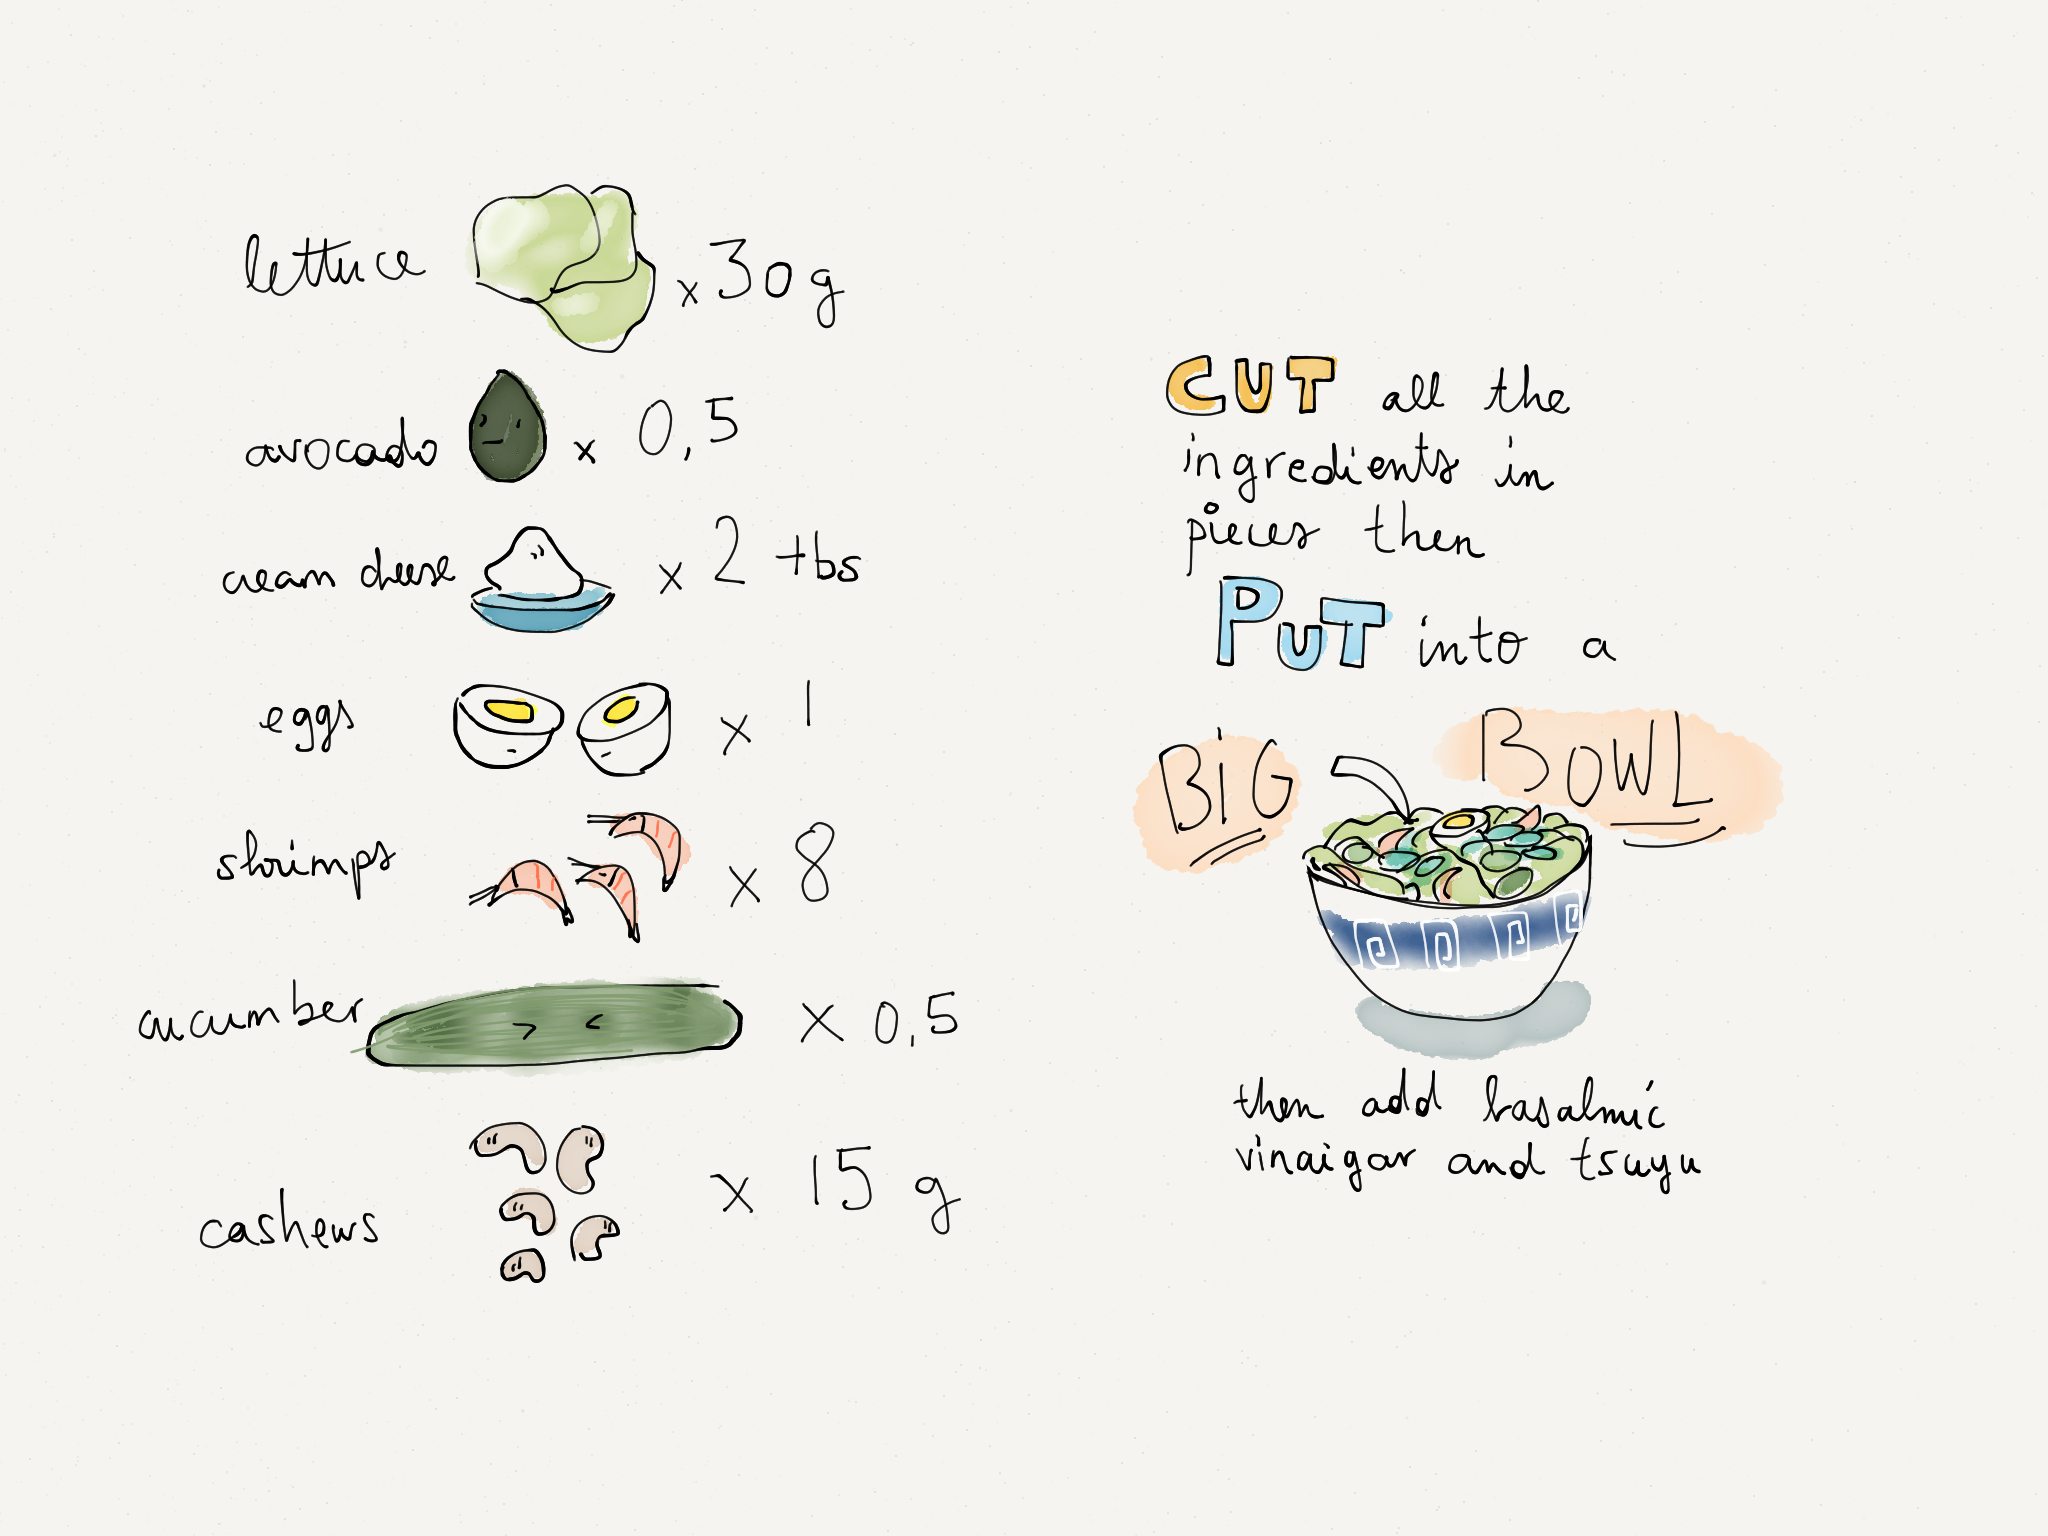 Sketch Recipe – Happiness summer salad bowl